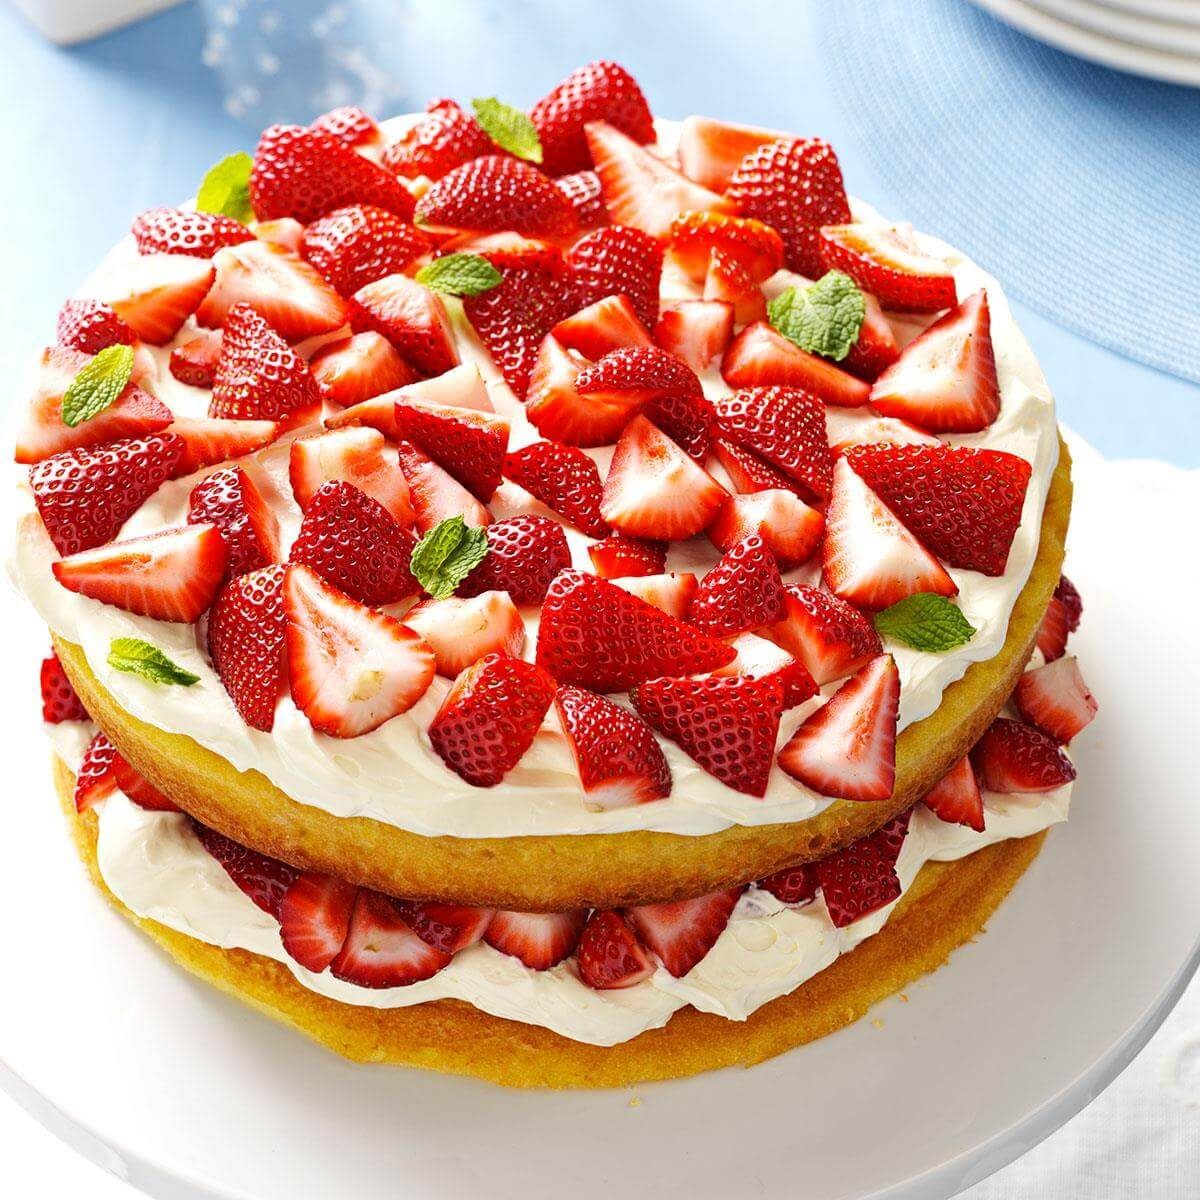 Deluxe Strawberry Shortcake